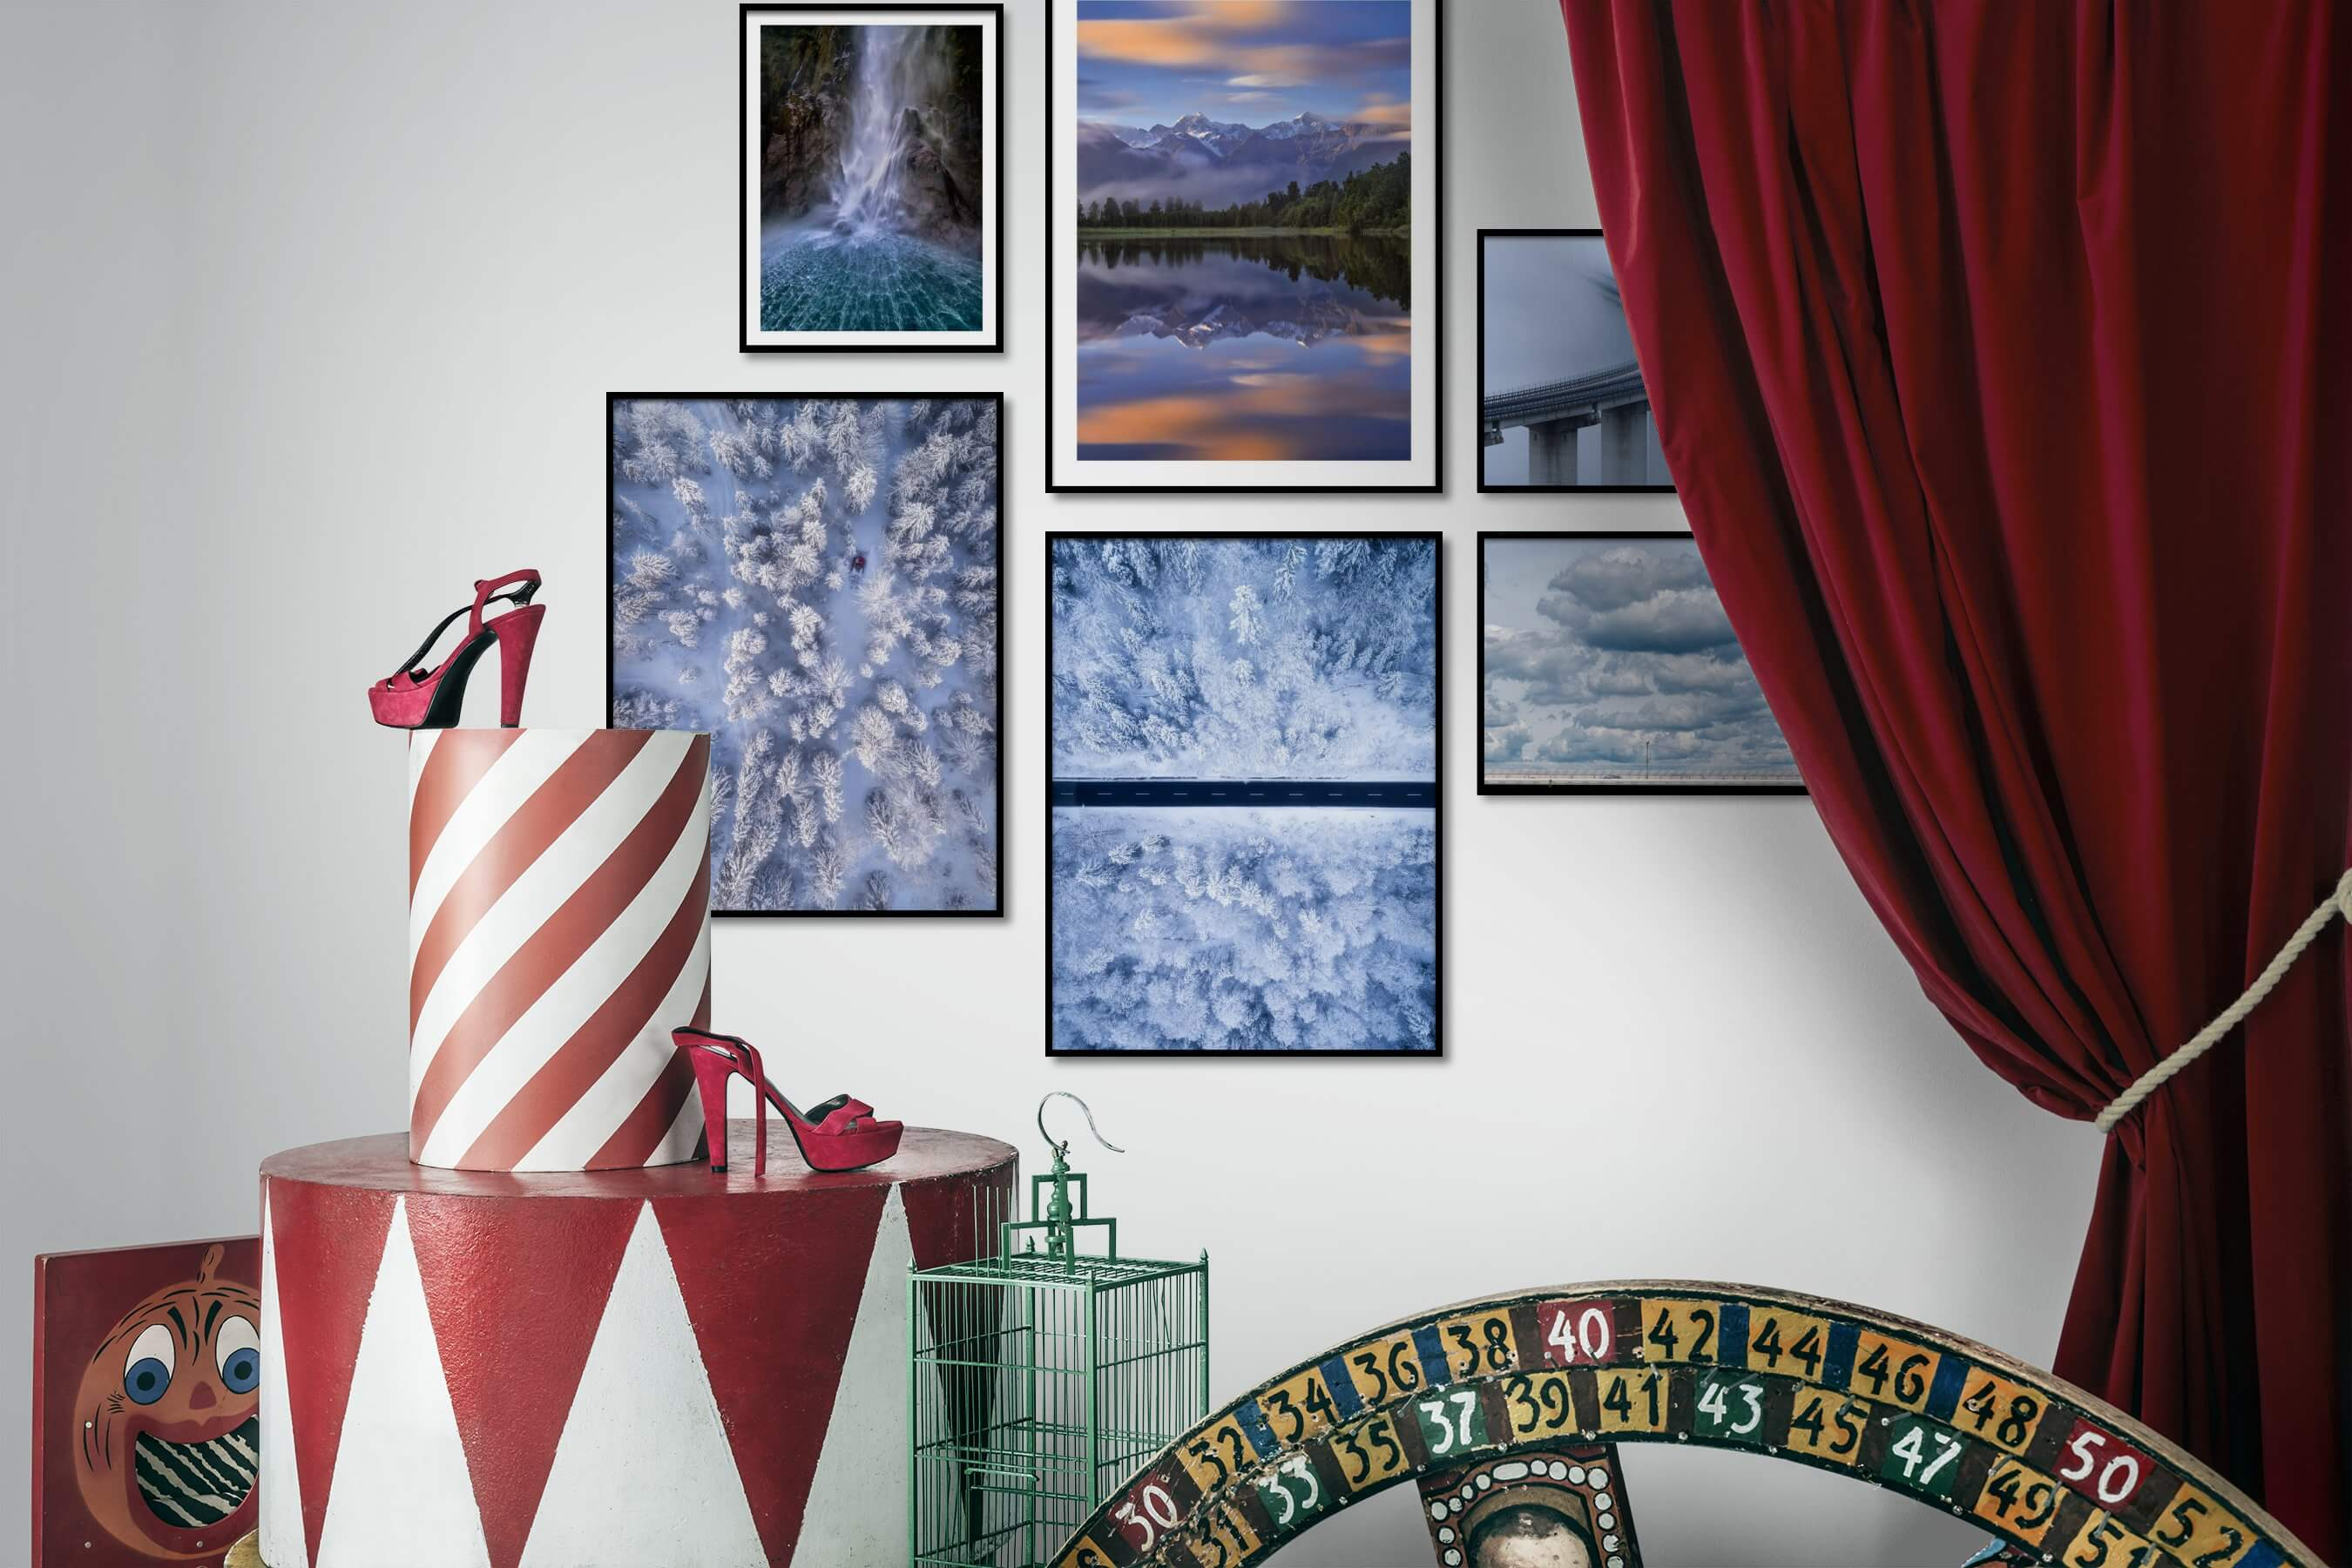 Gallery wall idea with six framed pictures arranged on a wall depicting Nature, For the Moderate, and For the Minimalist